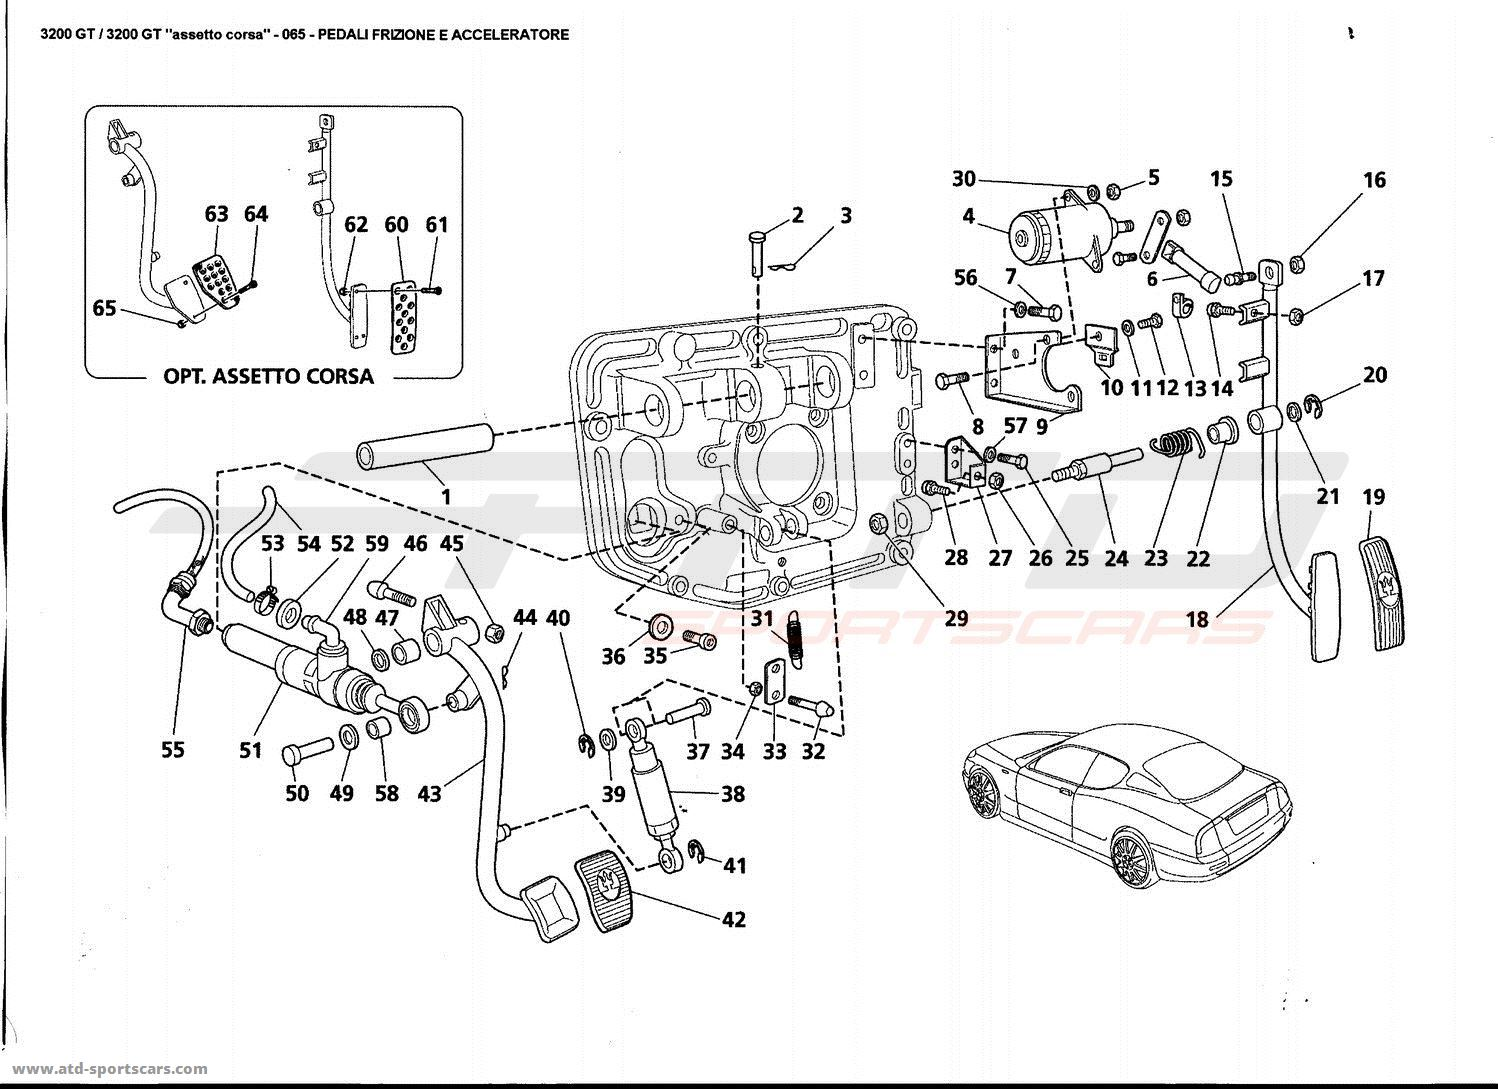 Maserati 3200 GT CLUTCH AND ACCELERATOR PEDALS parts at